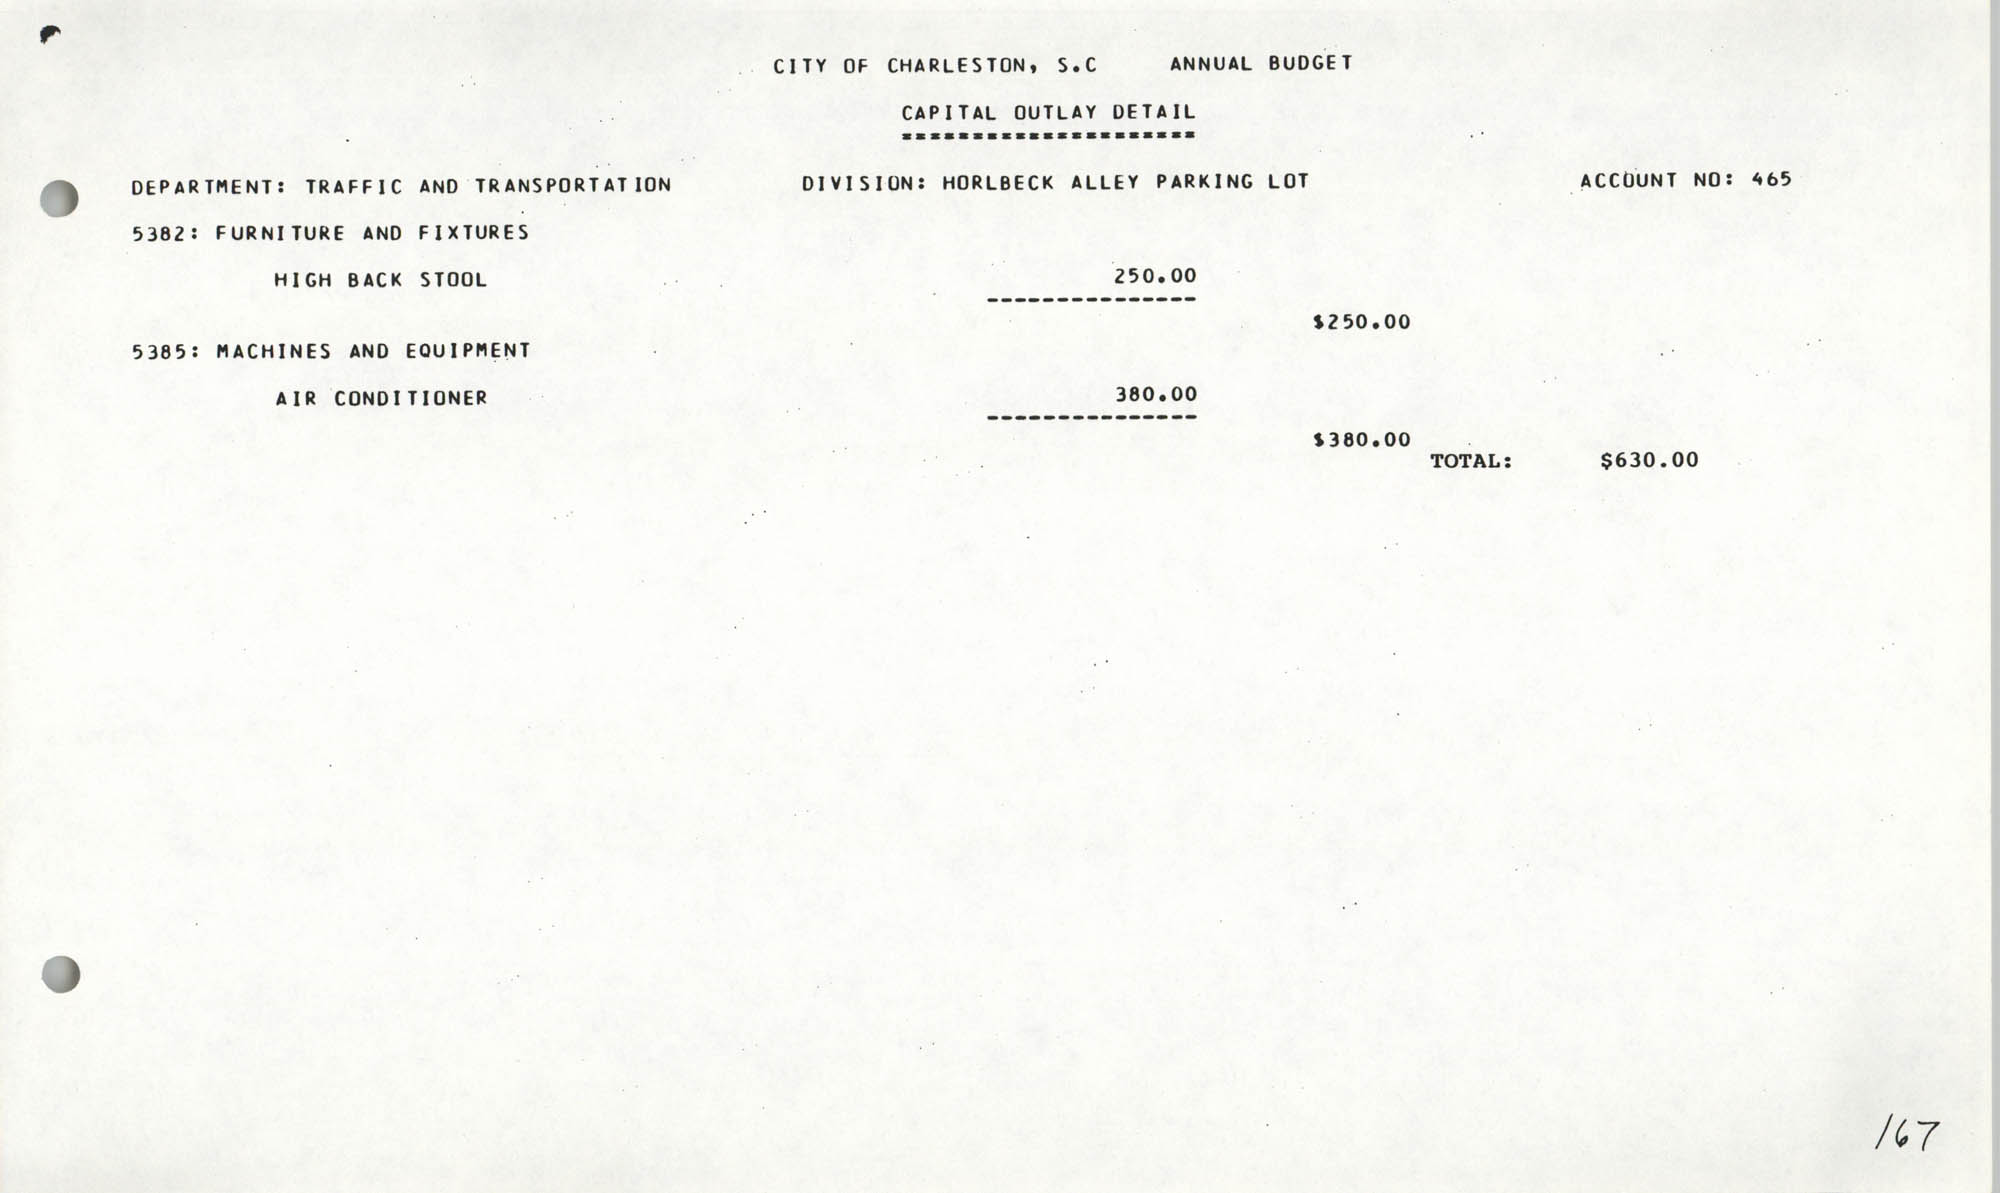 The City Council of Charleston, South Carolina, 1993 Budget, Page 167